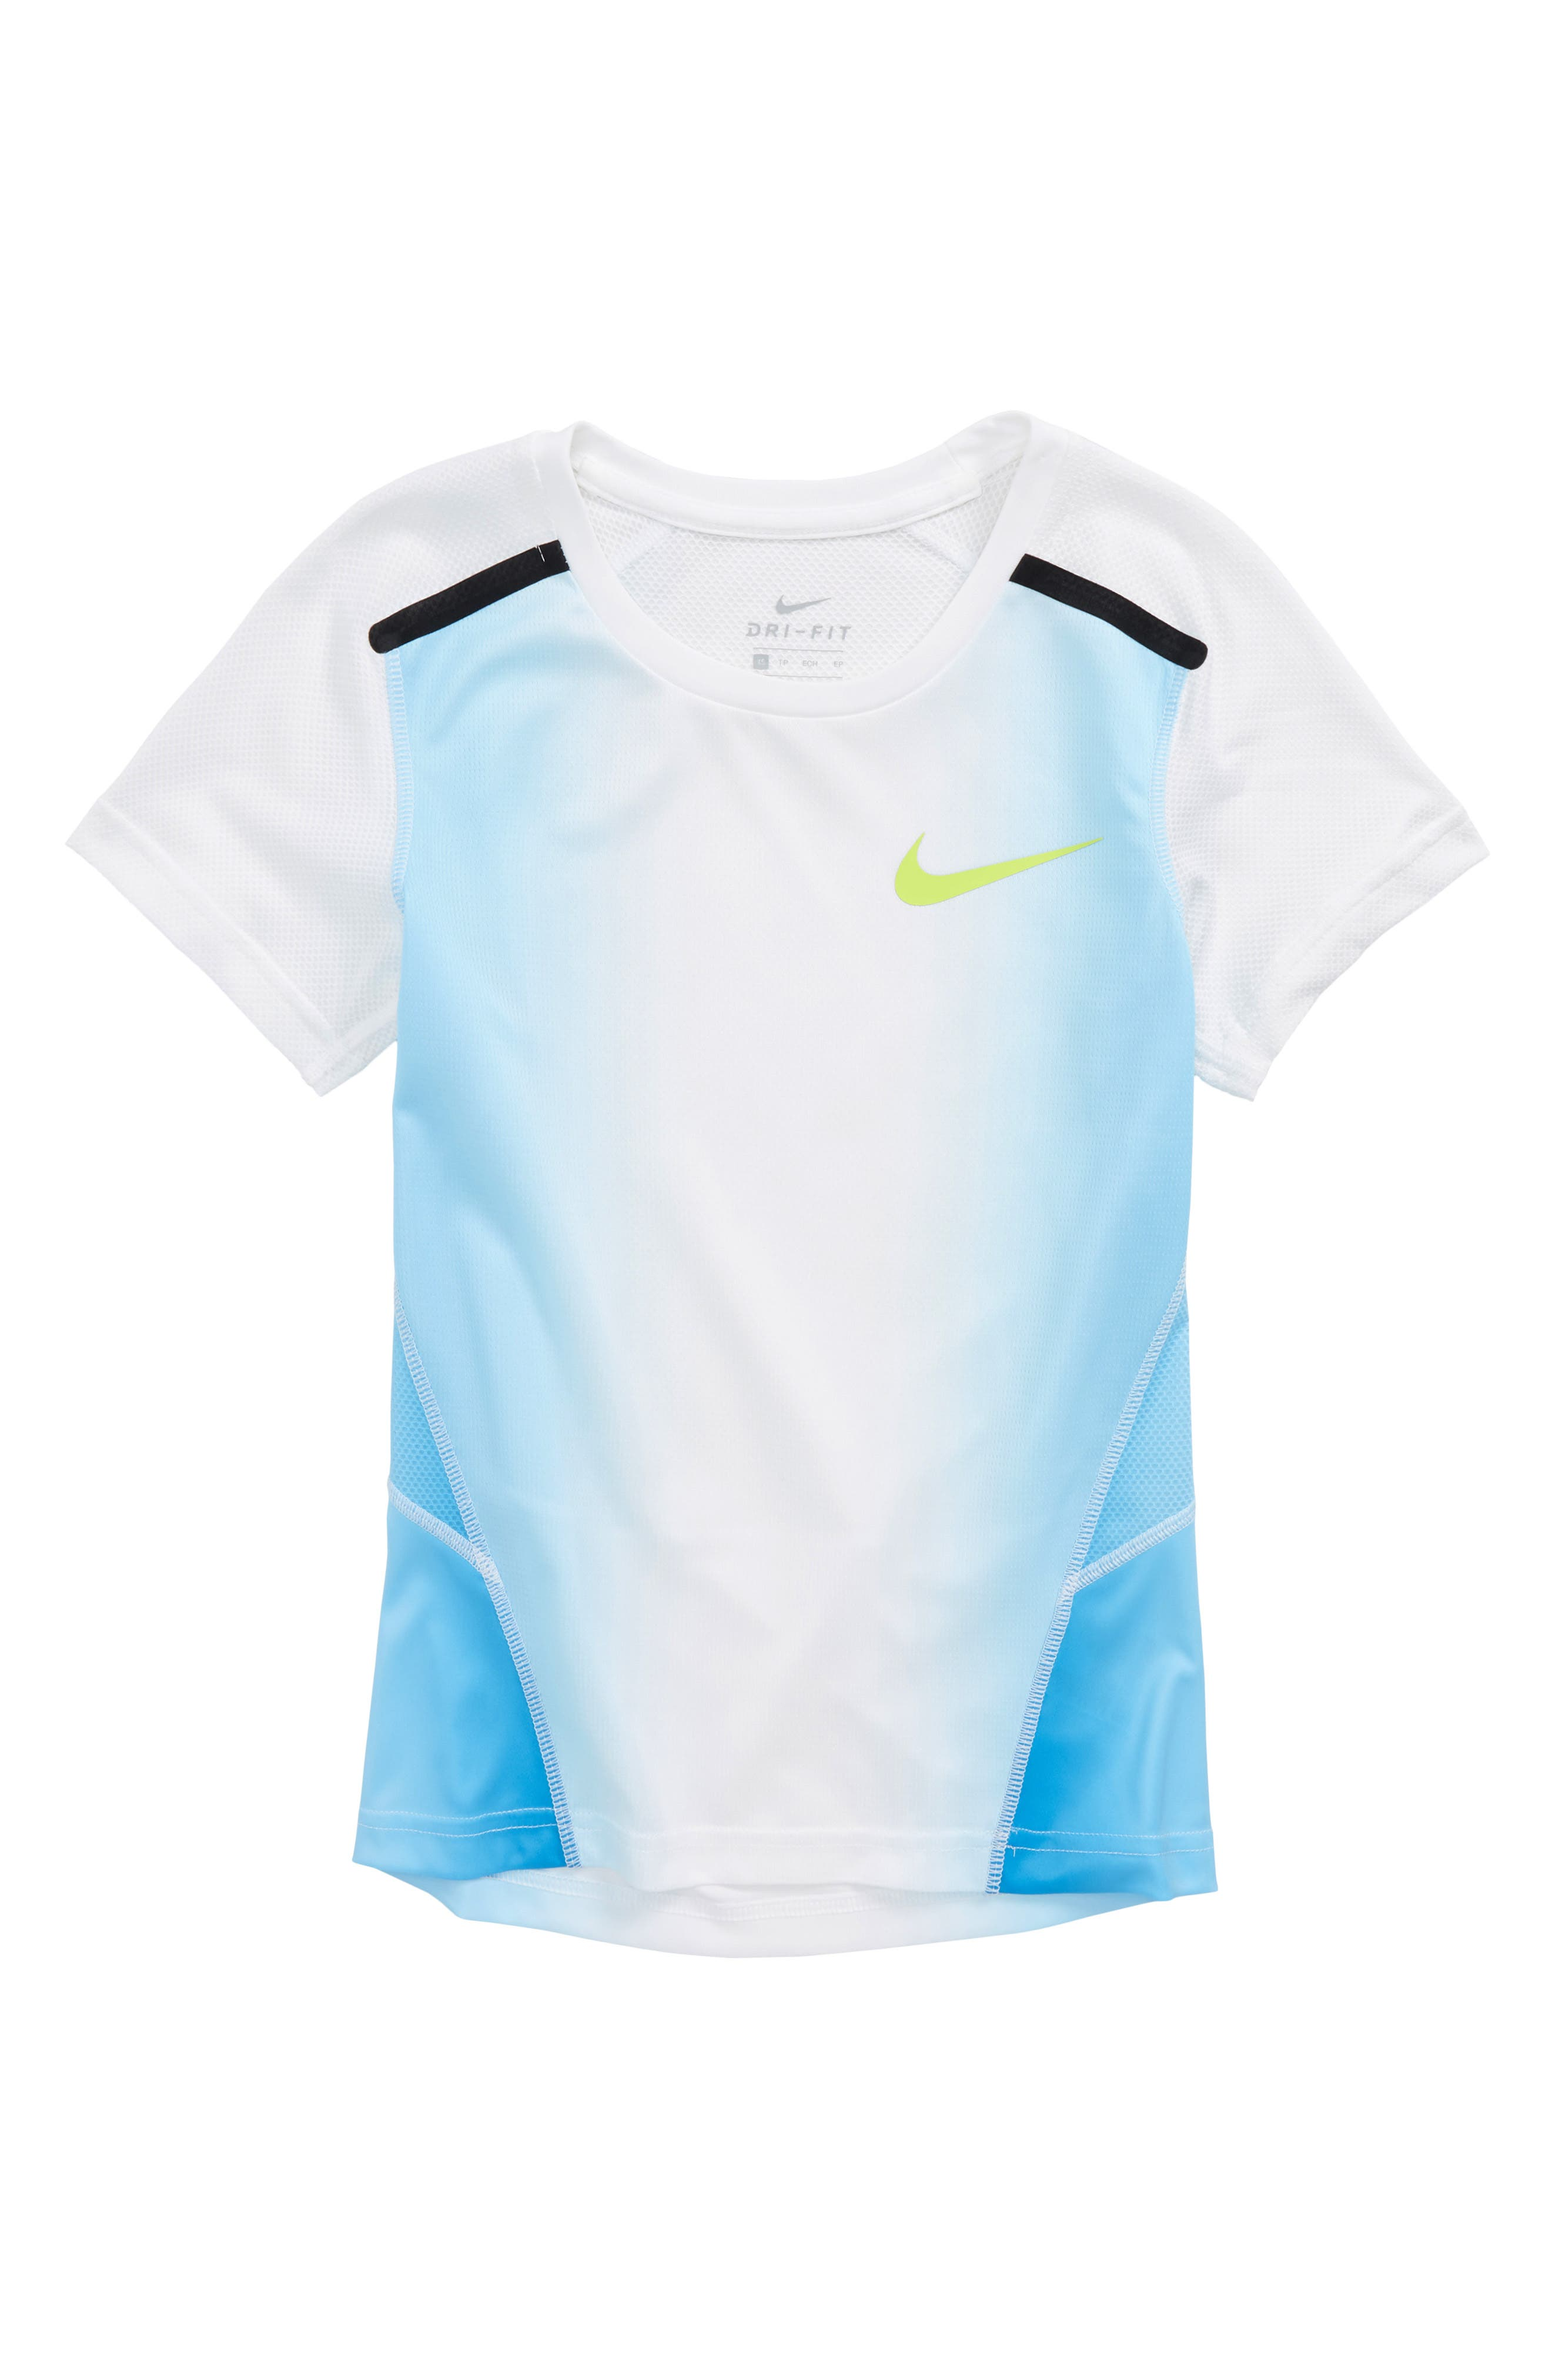 Breathe Dry Insta Air Shirt,                             Alternate thumbnail 8, color,